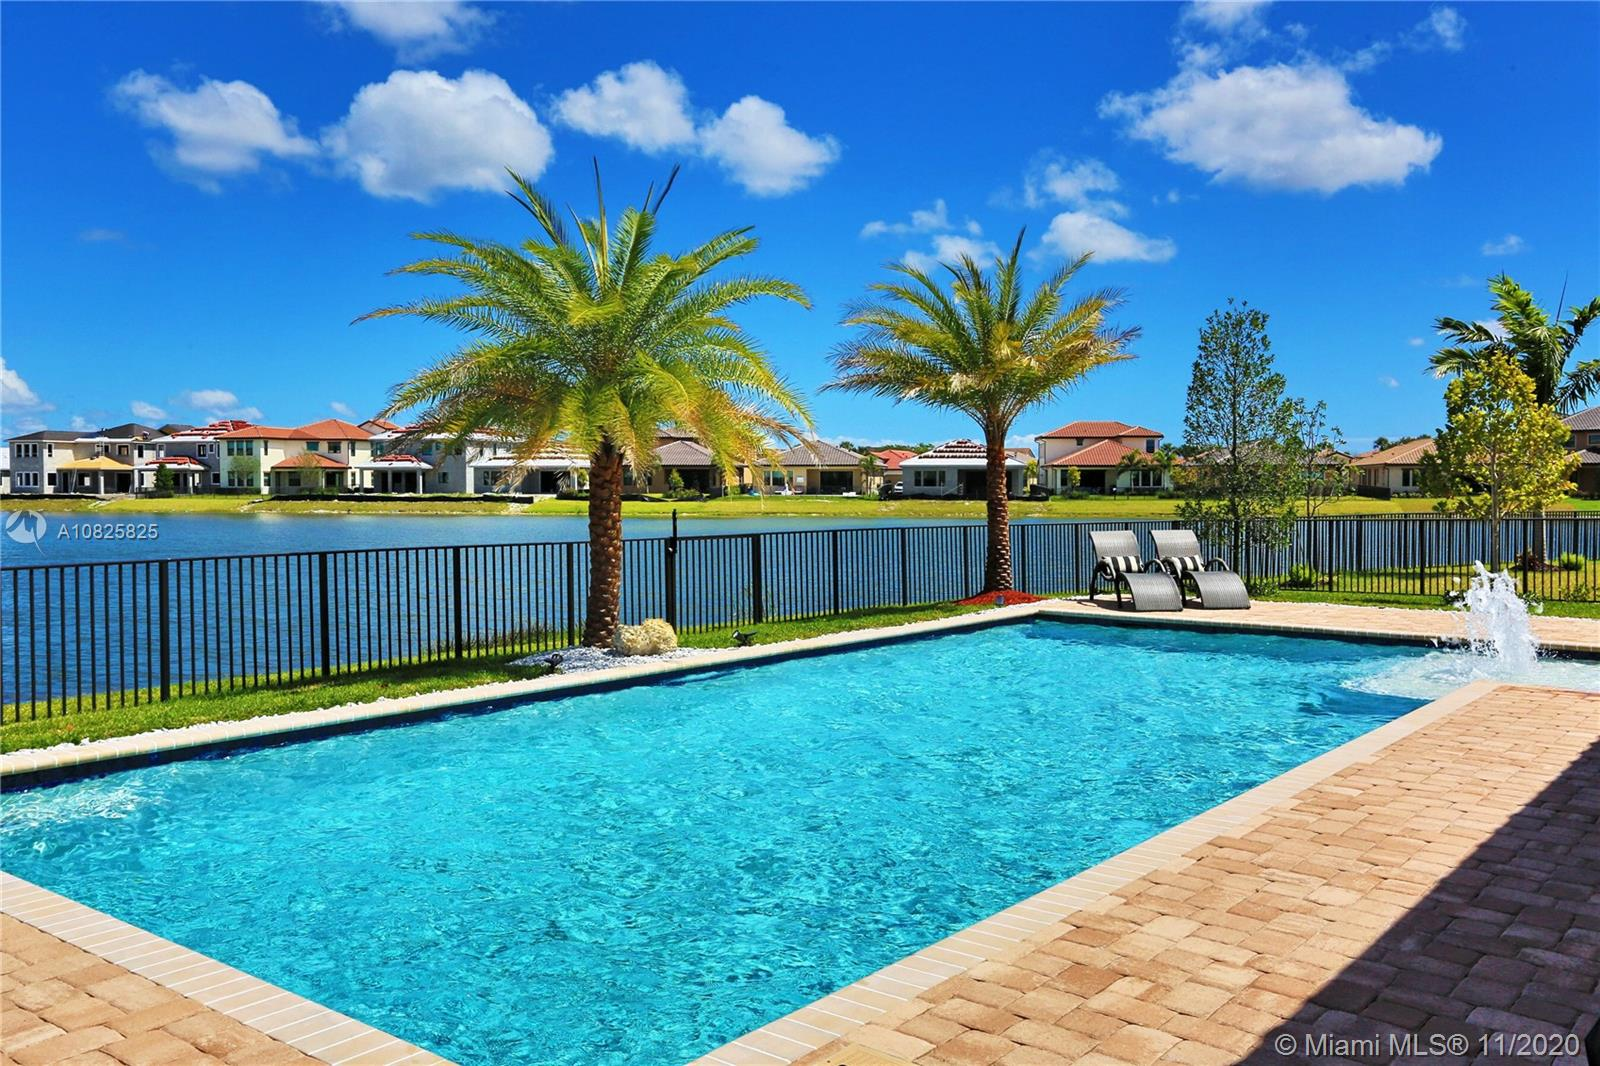 "Astounding Parkland Bay 2-story Sycamore C Italianate lakefront heated pool, featuring 5-bedrooms, 5-bathrooms, split 3-car garages, on a quiet cul-de-sac, Lennar's Wi-Fi CERTIFIED™ with Everything's Included® package. Rich and extravagant features, stunning, lavish and comfortable living. Mediterranean courtyard entrance off the formal living room, sophisticated butler's pantry, 1-bedroom and cabana bath on the ground floor, walk-in closets in each bedrooms and a huge laundry room. Over $245K in finer finishes, exceptional kitchen cabinets and built-ins, interior décors, high ceilings curtains, lighting fixtures, spectacular wood stairway with a fine stone accent wall, Italian white 24"" tiles downstairs and warm brown wood-laminate floorings upstairs. ""A"" rated schools and HOA at $260/mo."